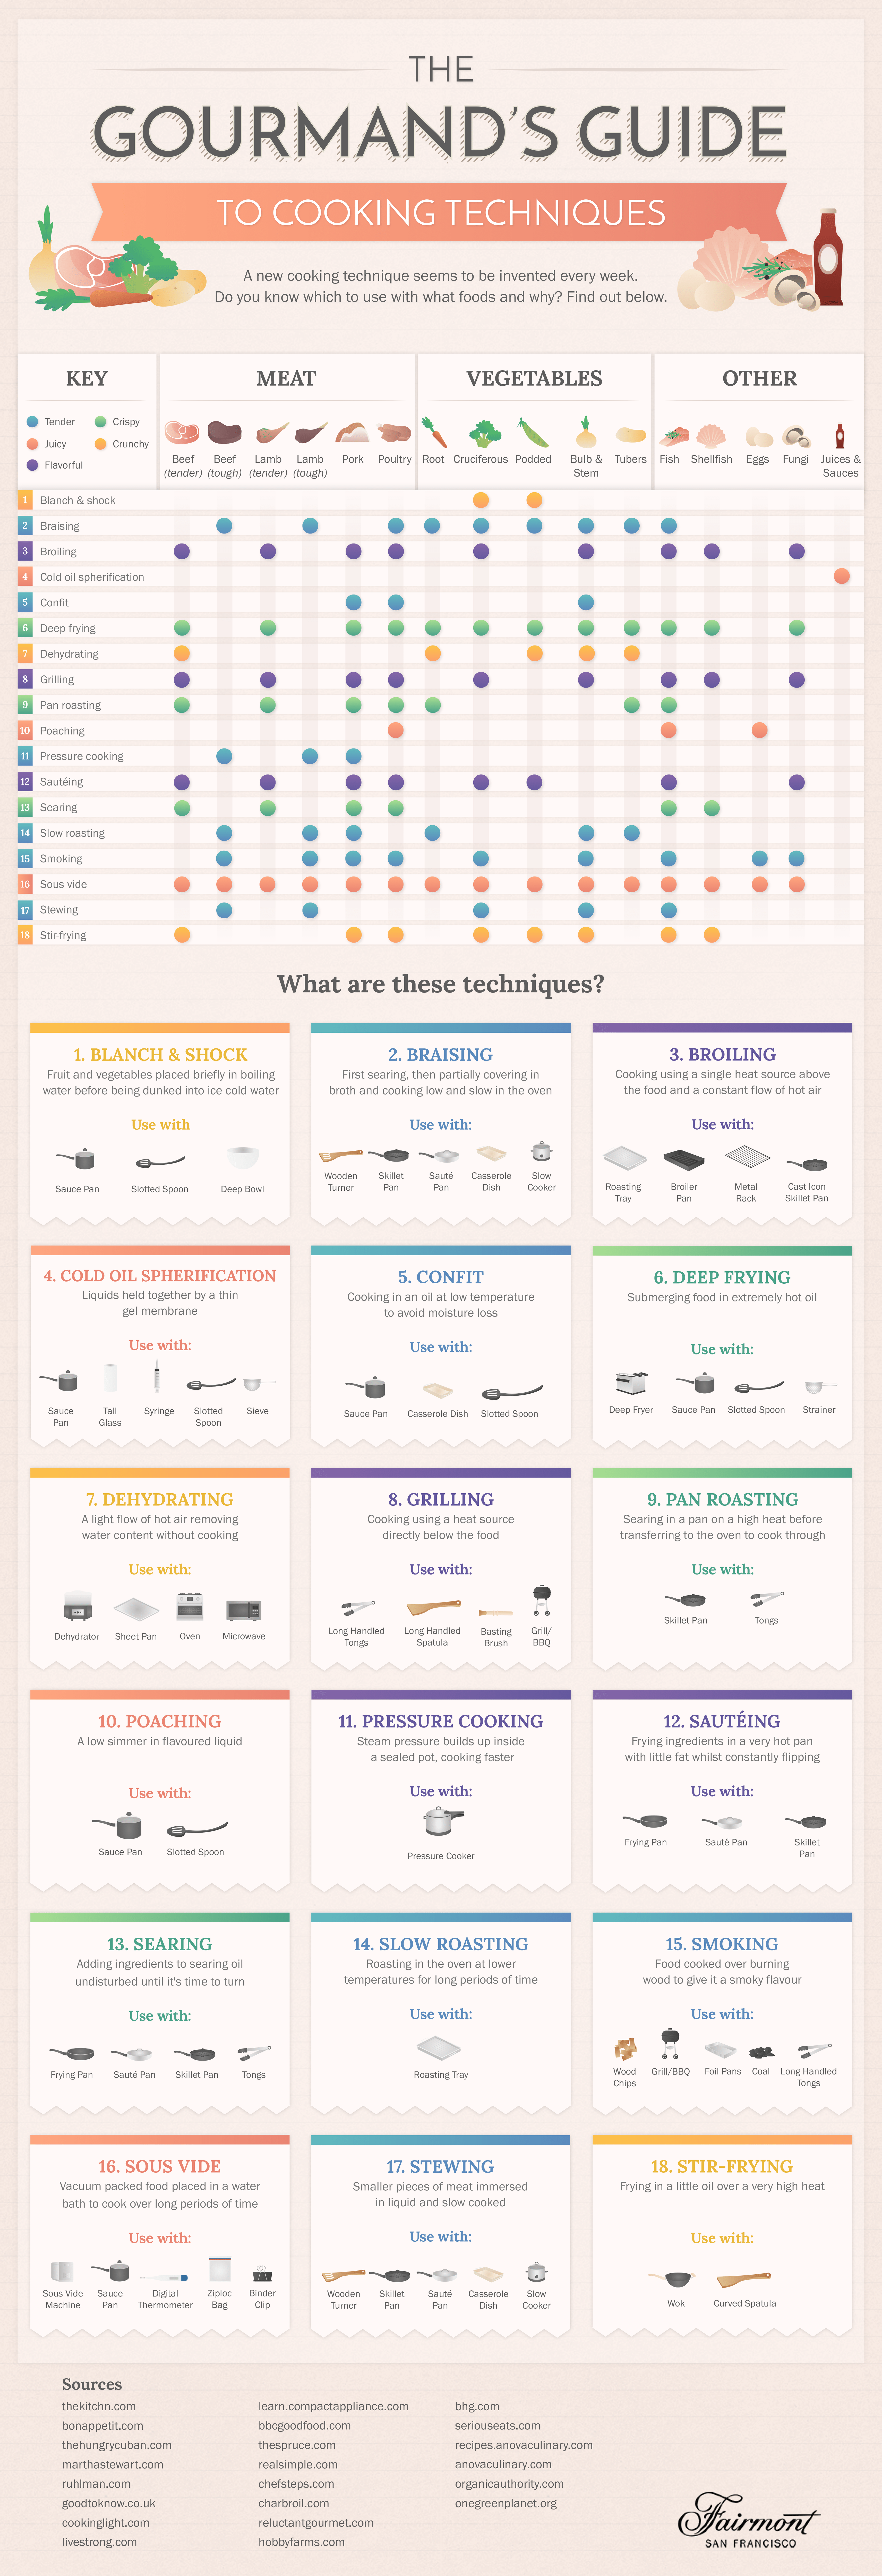 With new cooking techniques being invented every day, check out this guide to get your head around which food should be used with which technique.